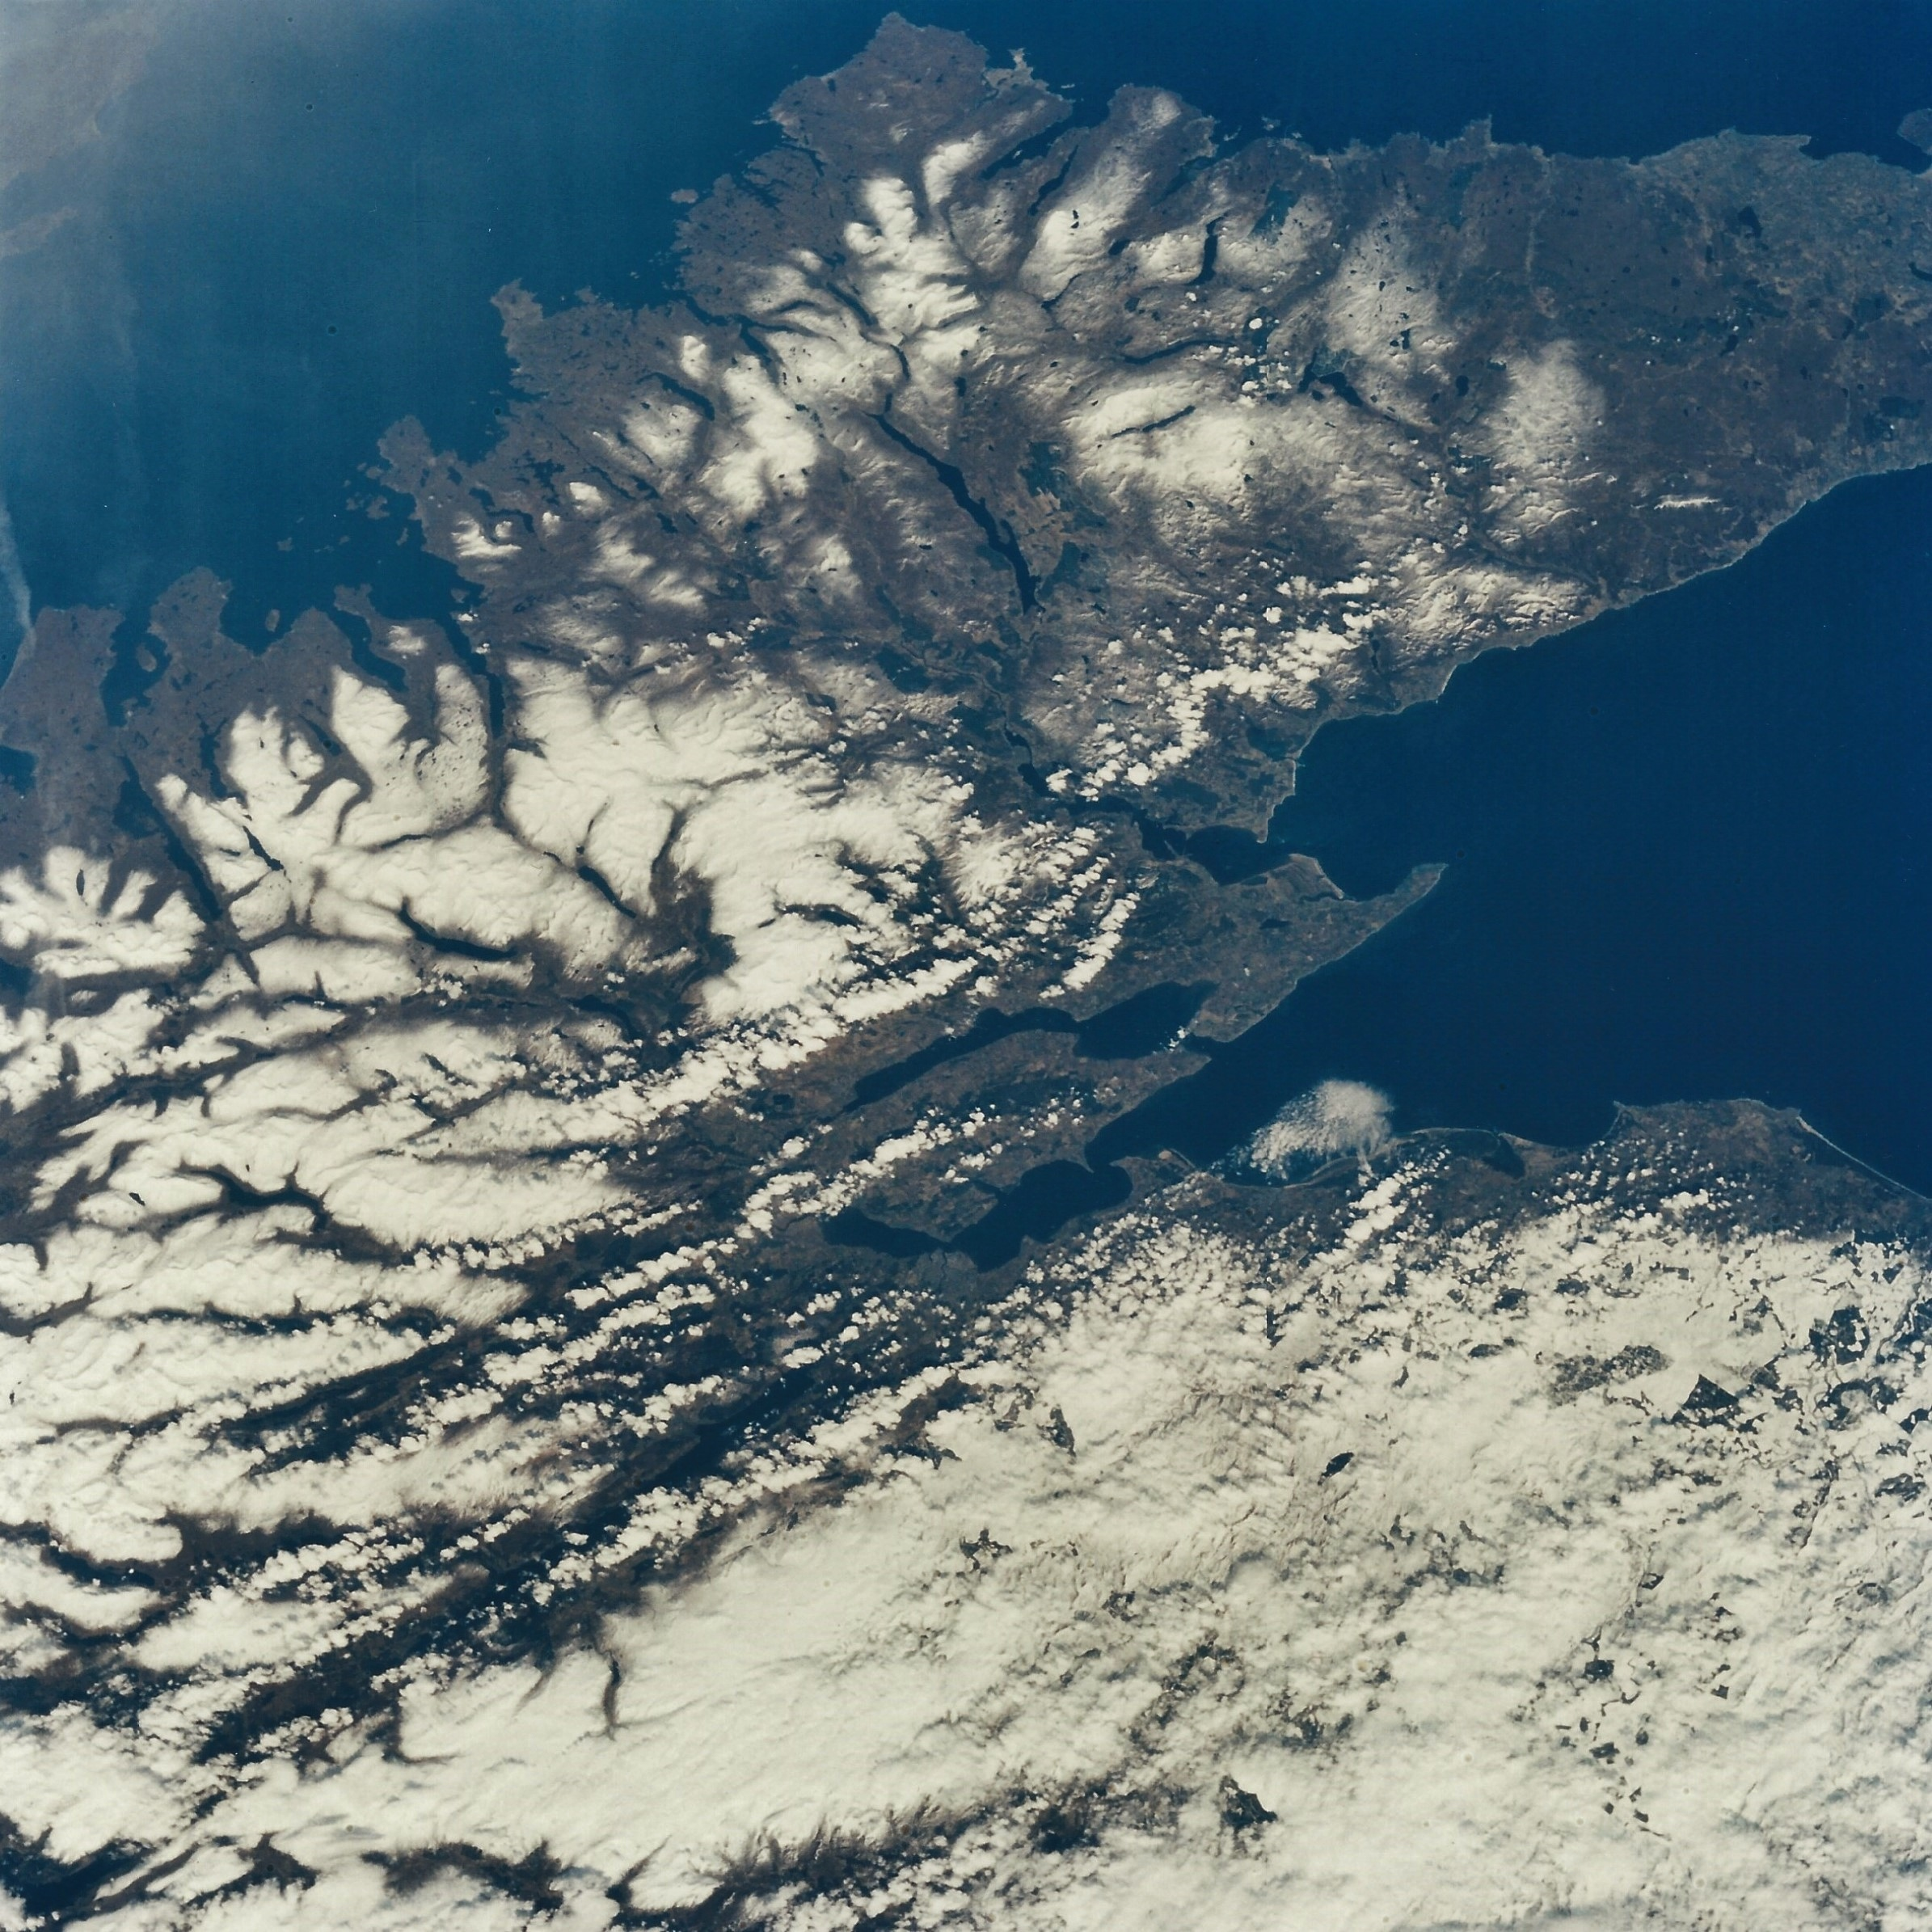 Inverness, Loch Ness, and northern Scotland from Endeavour, STS-59. April 10, 1994. Hasselblad 100mm. (NASA STS059-76-077)